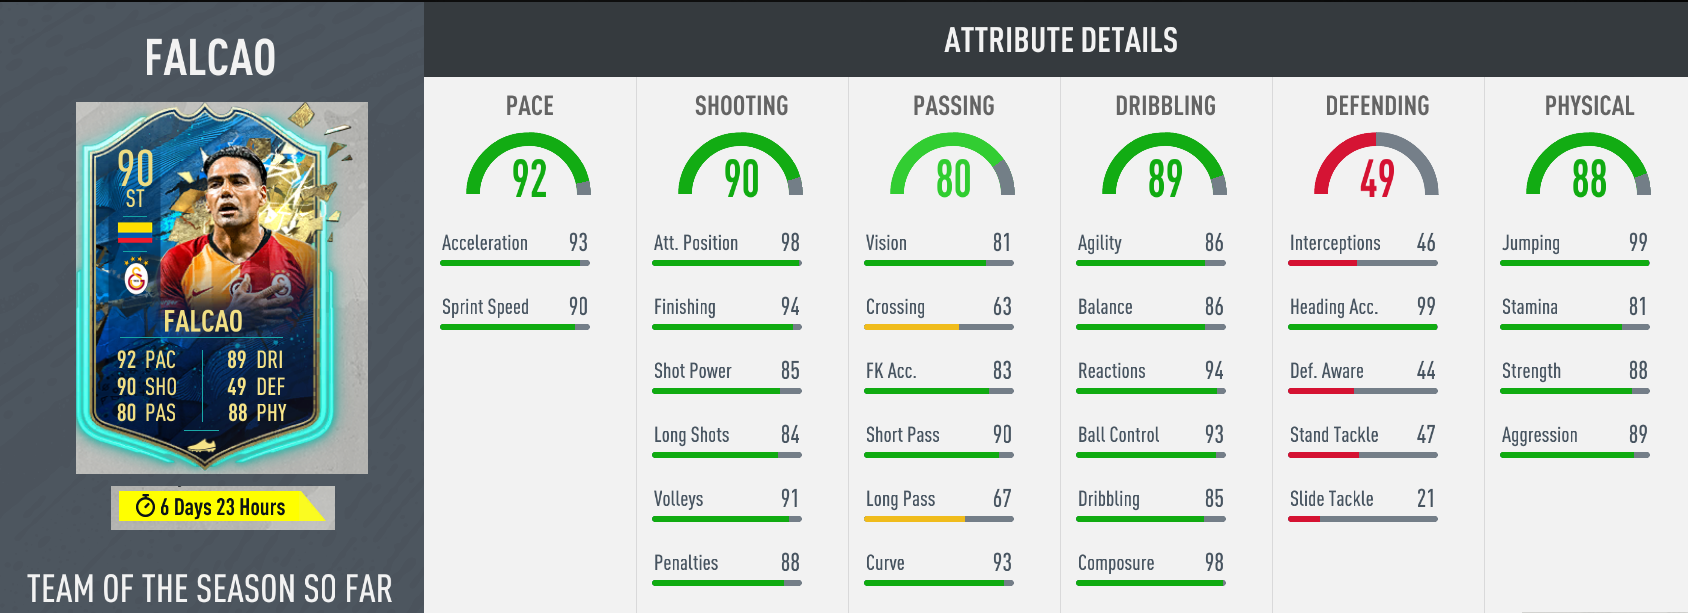 In-game stats for Falcao's TOTSSF Challenge card in FIFA 20 Ultimate Team FUT.